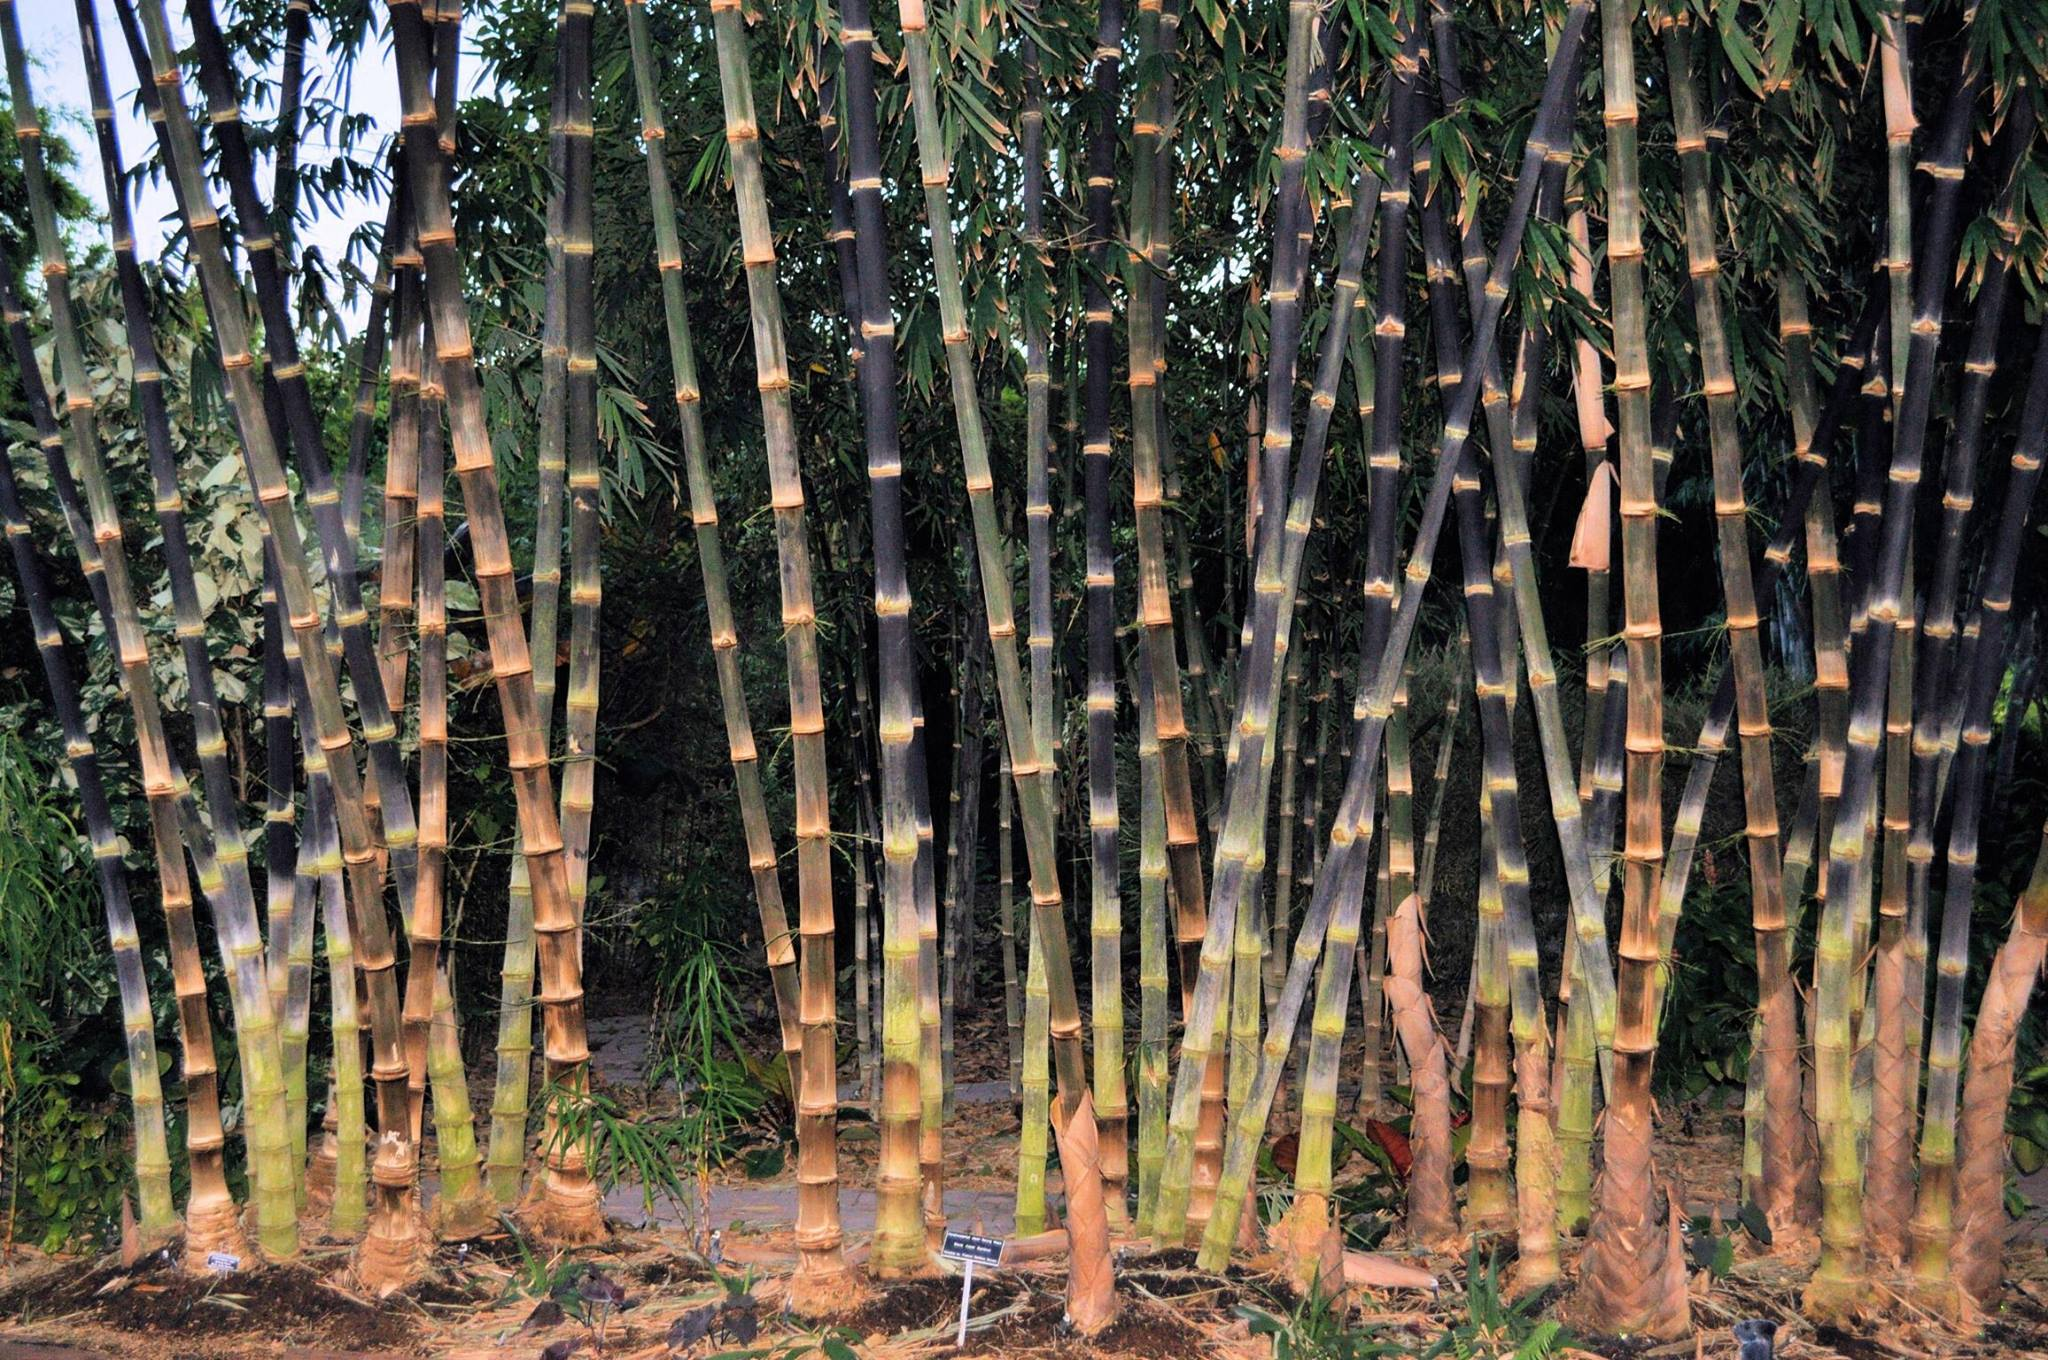 Tropical Bamboo Nursery & Gardens - Loxahatchee Convenience